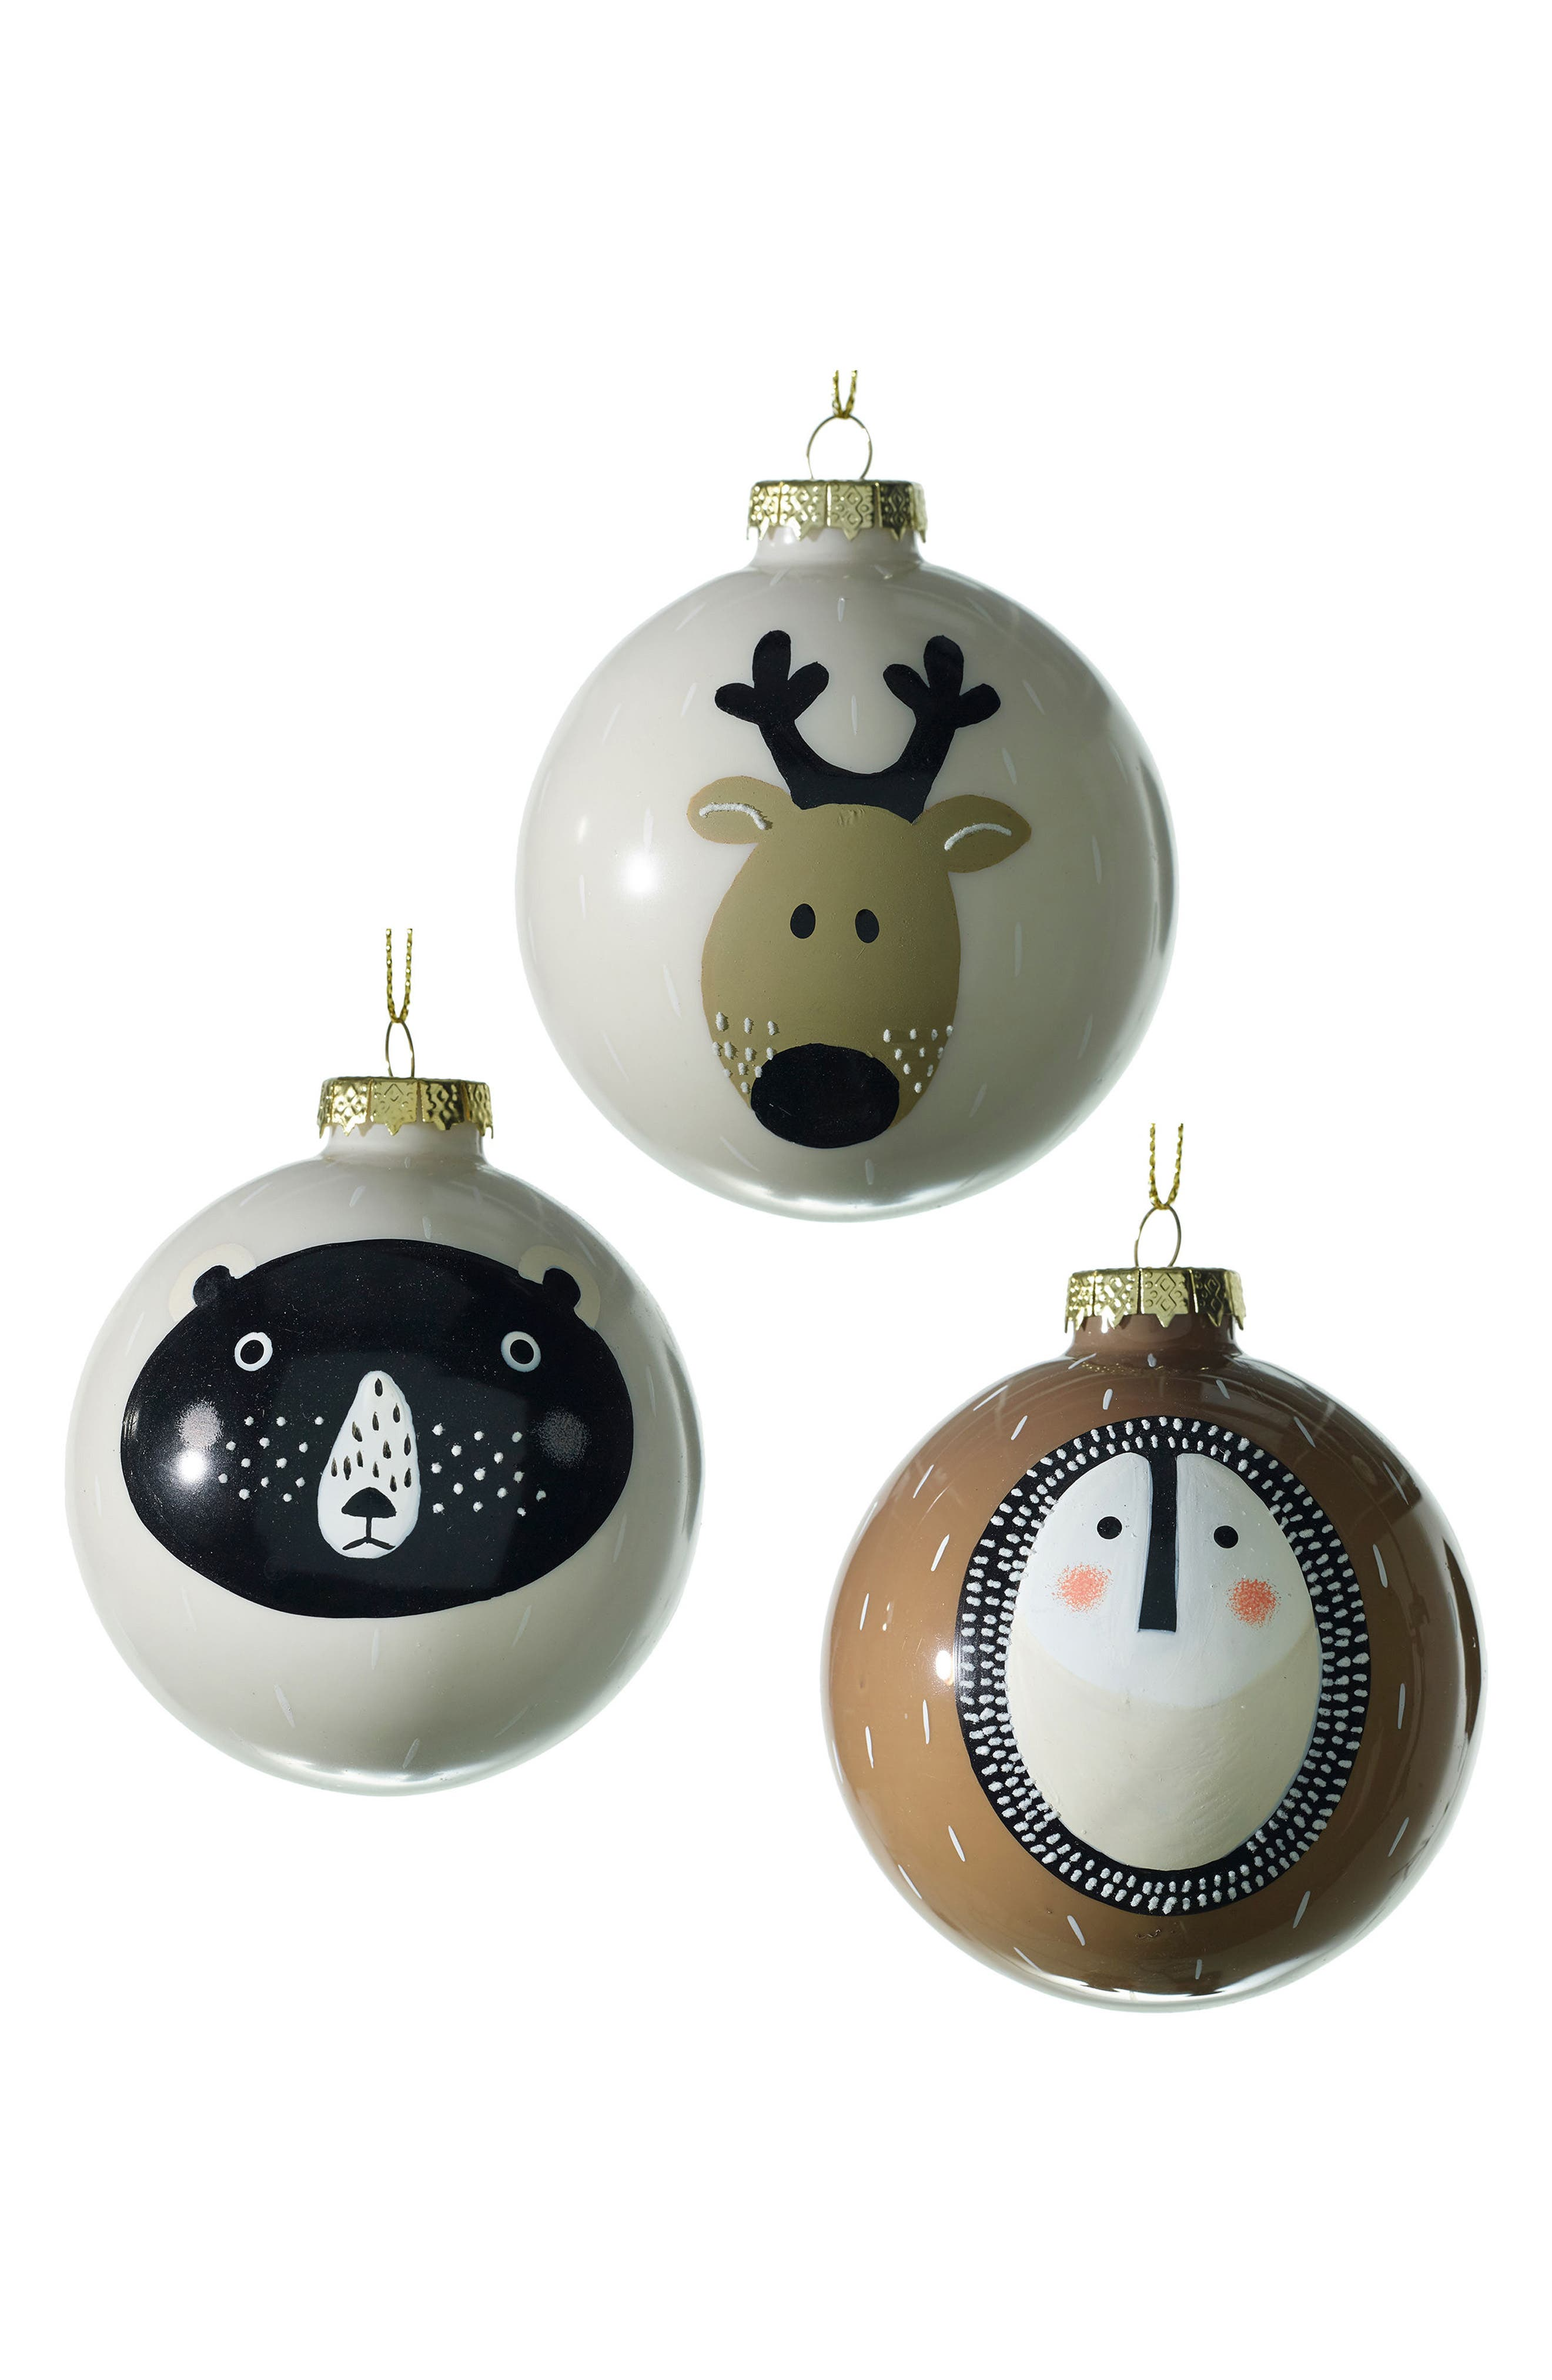 Alternate Image 1 Selected - Accent Decor Wild Animal Set of 3 Glass Ball Ornaments